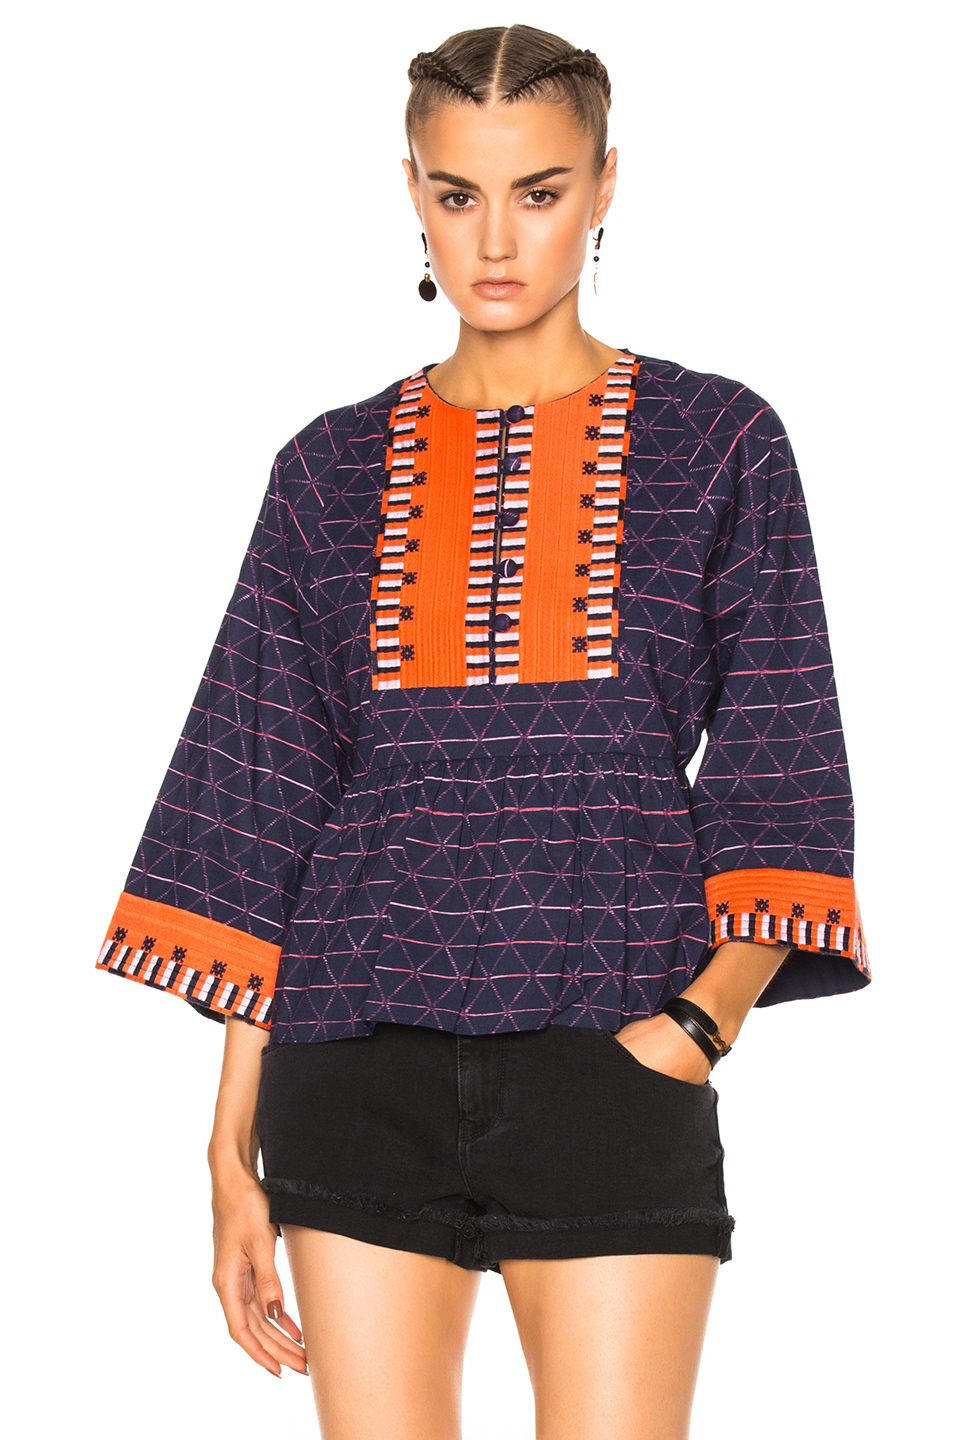 APIECE APART Todos Santos Drape Top in Embroidered La Esquina Print